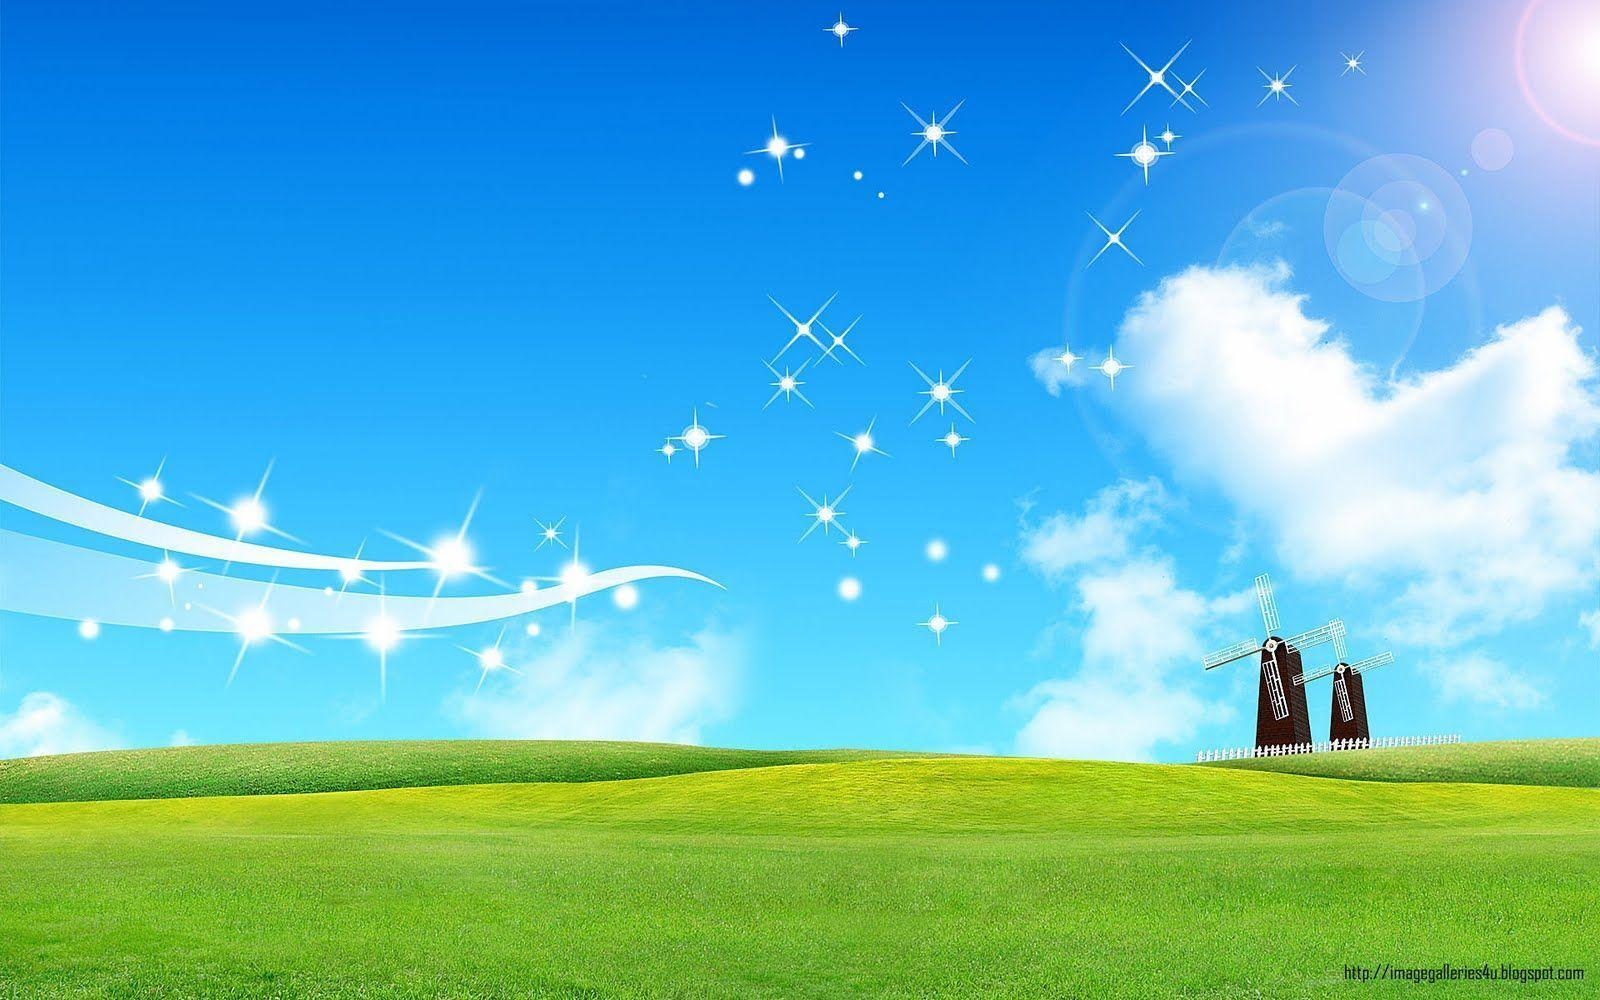 Windows Xp Background 1920x1080: Windows XP Wallpapers HD